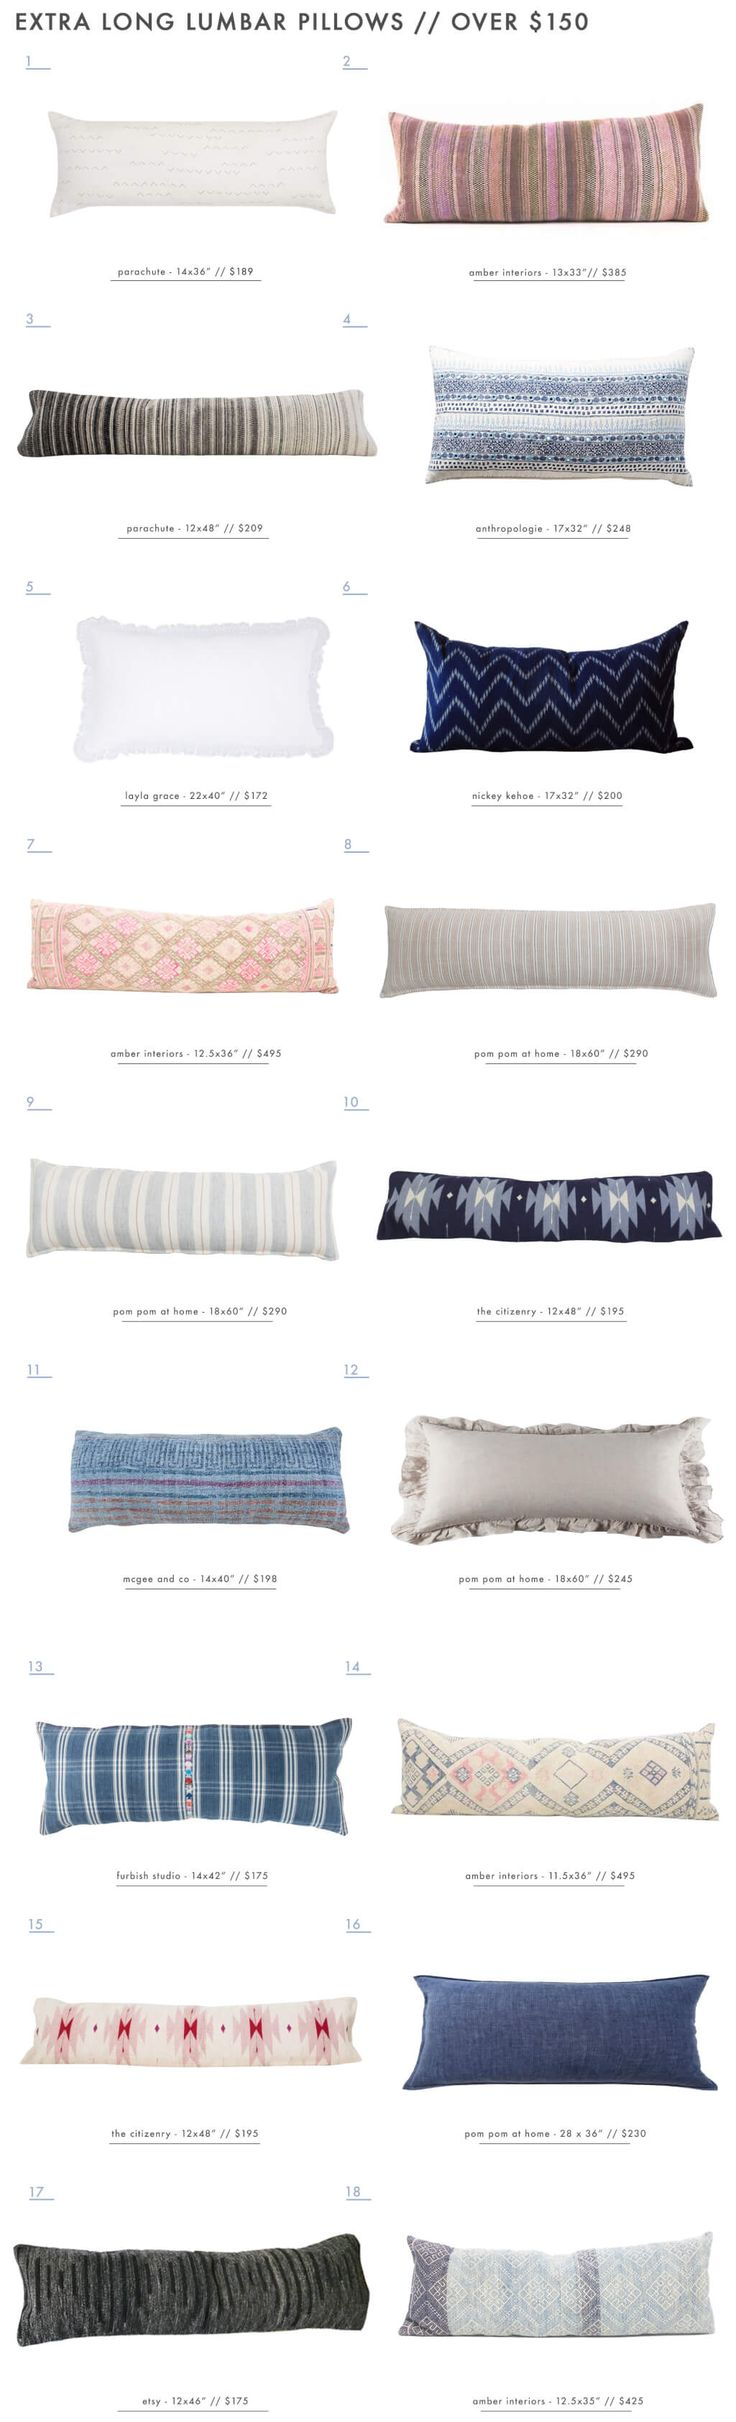 In case you haven't noticed there is a pillow trend happening right now in the bedroom and we are very into it over here at EHD. Although we covered it a few years back on the blog here, it still remains just as relevant, functional, and stylish which is why we wanted to introduce it to... Read More …